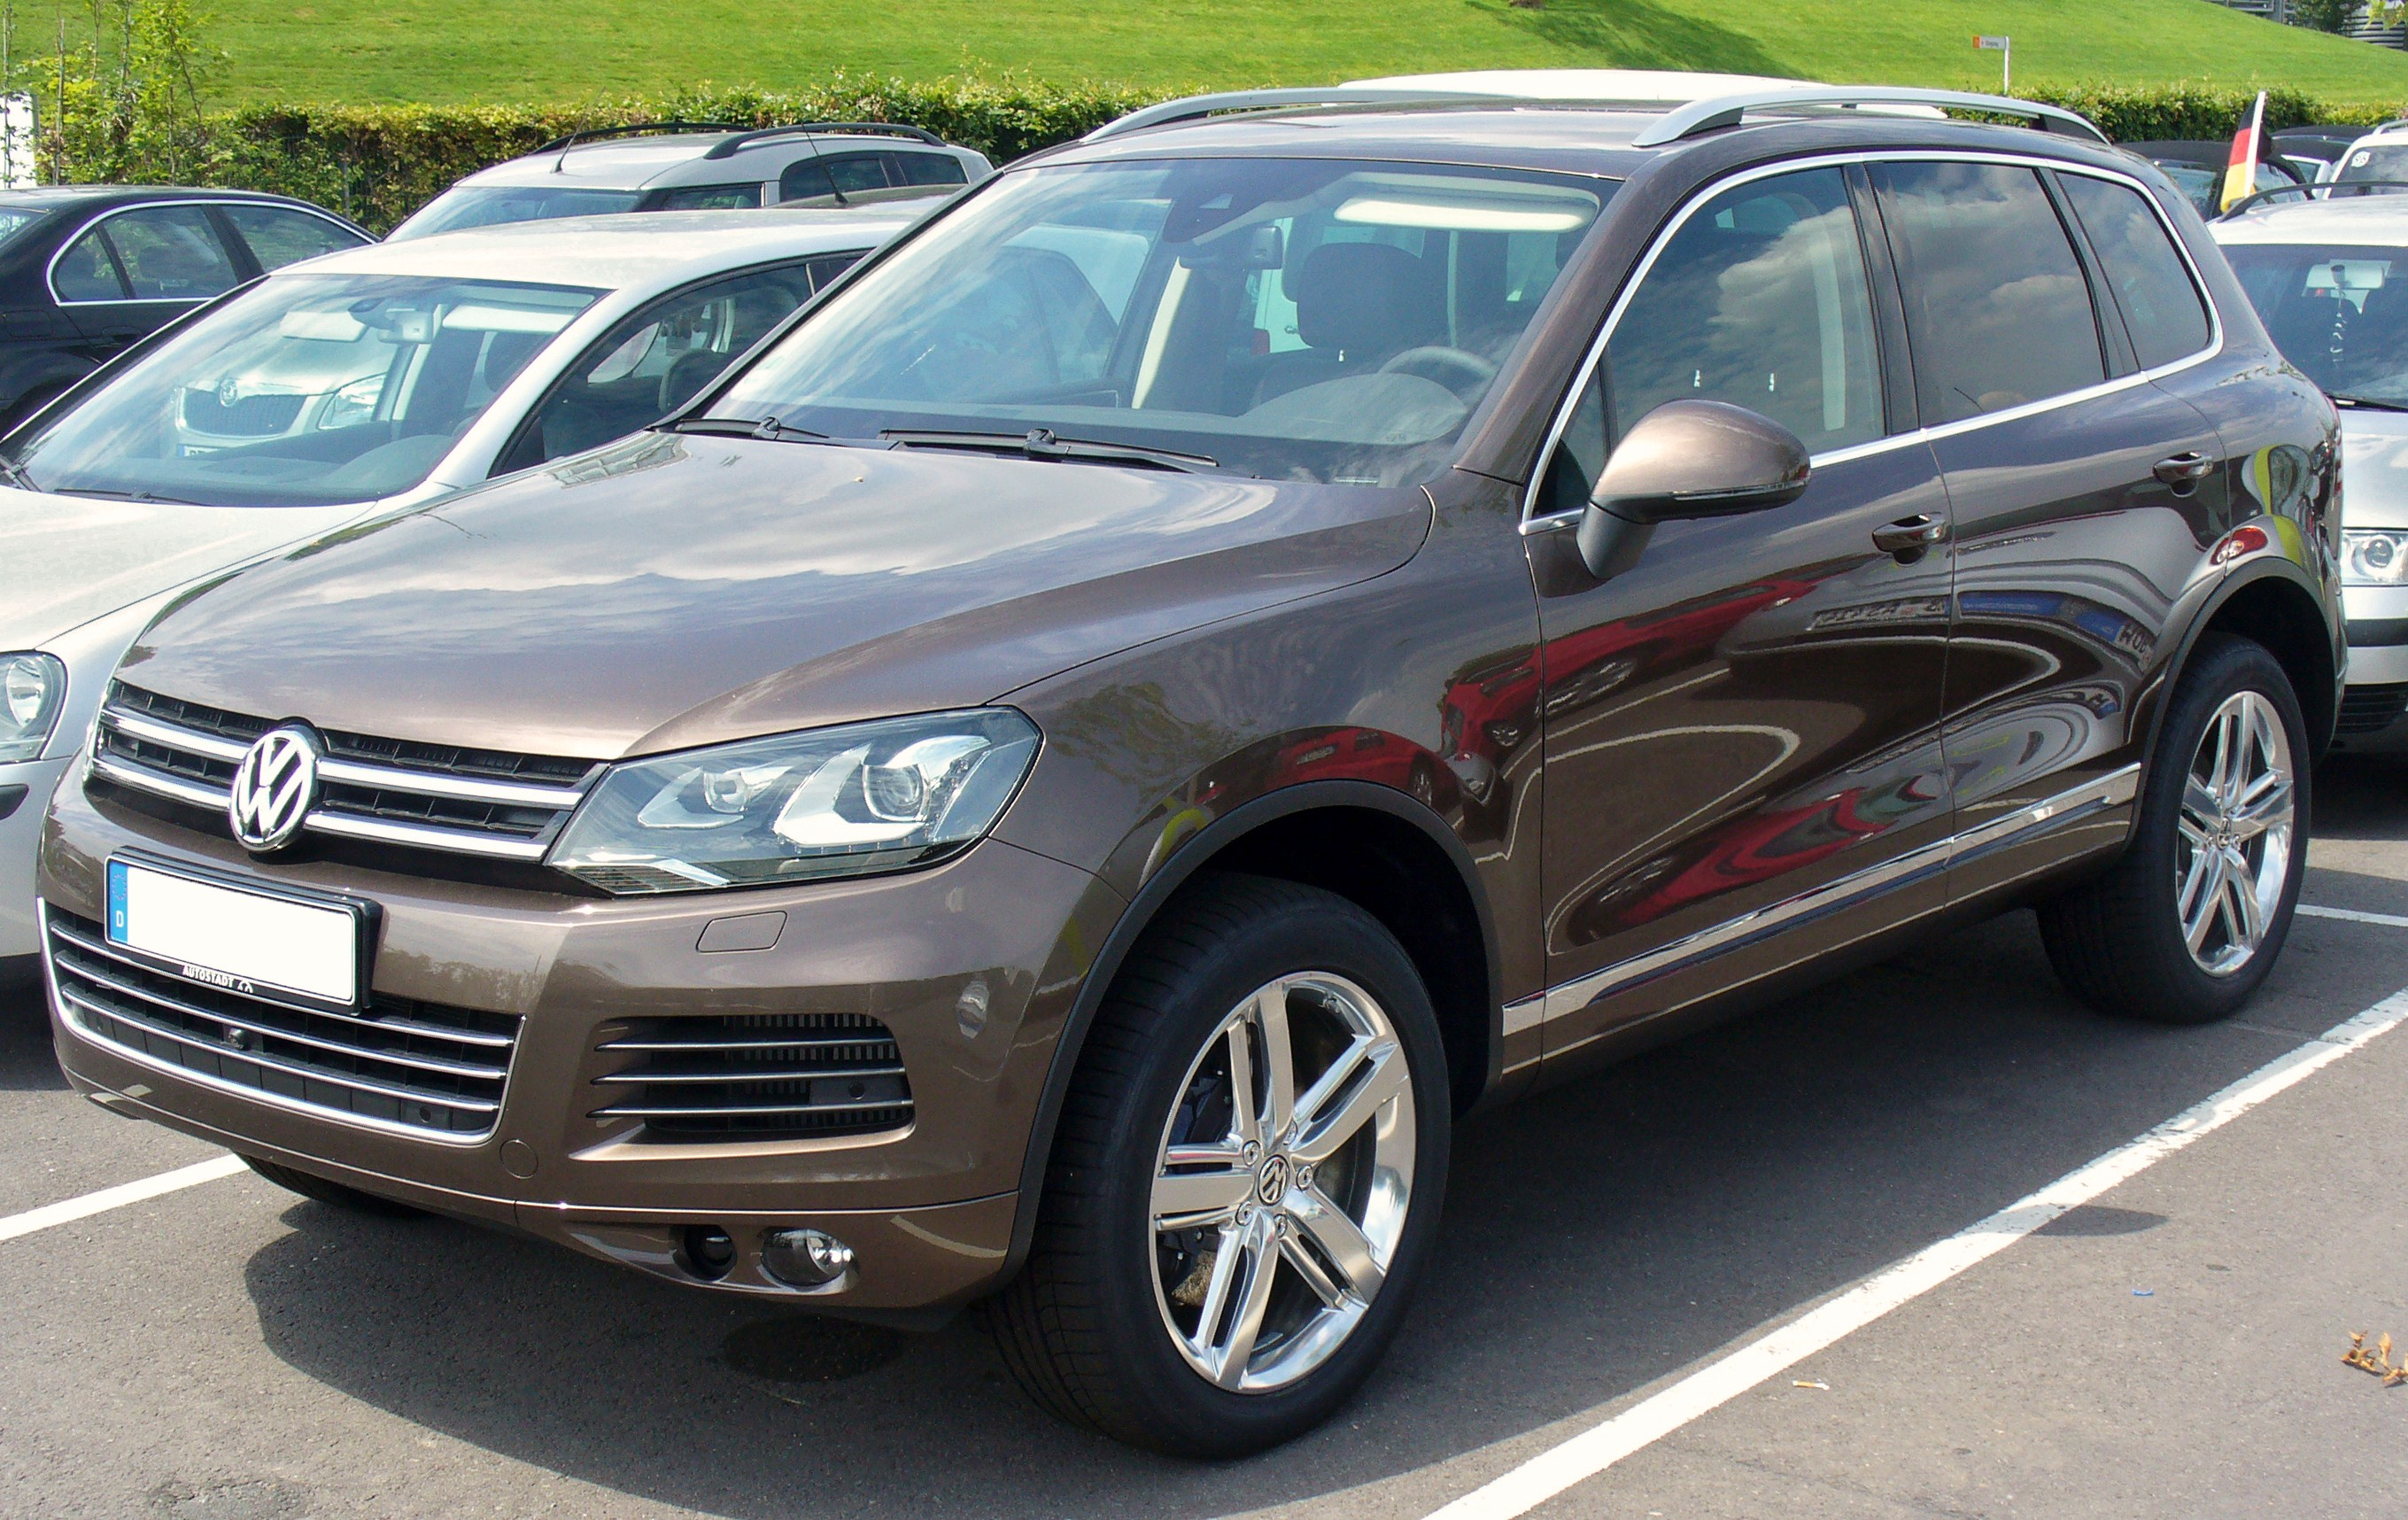 file vw touareg ii v6 tdi wikimedia commons. Black Bedroom Furniture Sets. Home Design Ideas